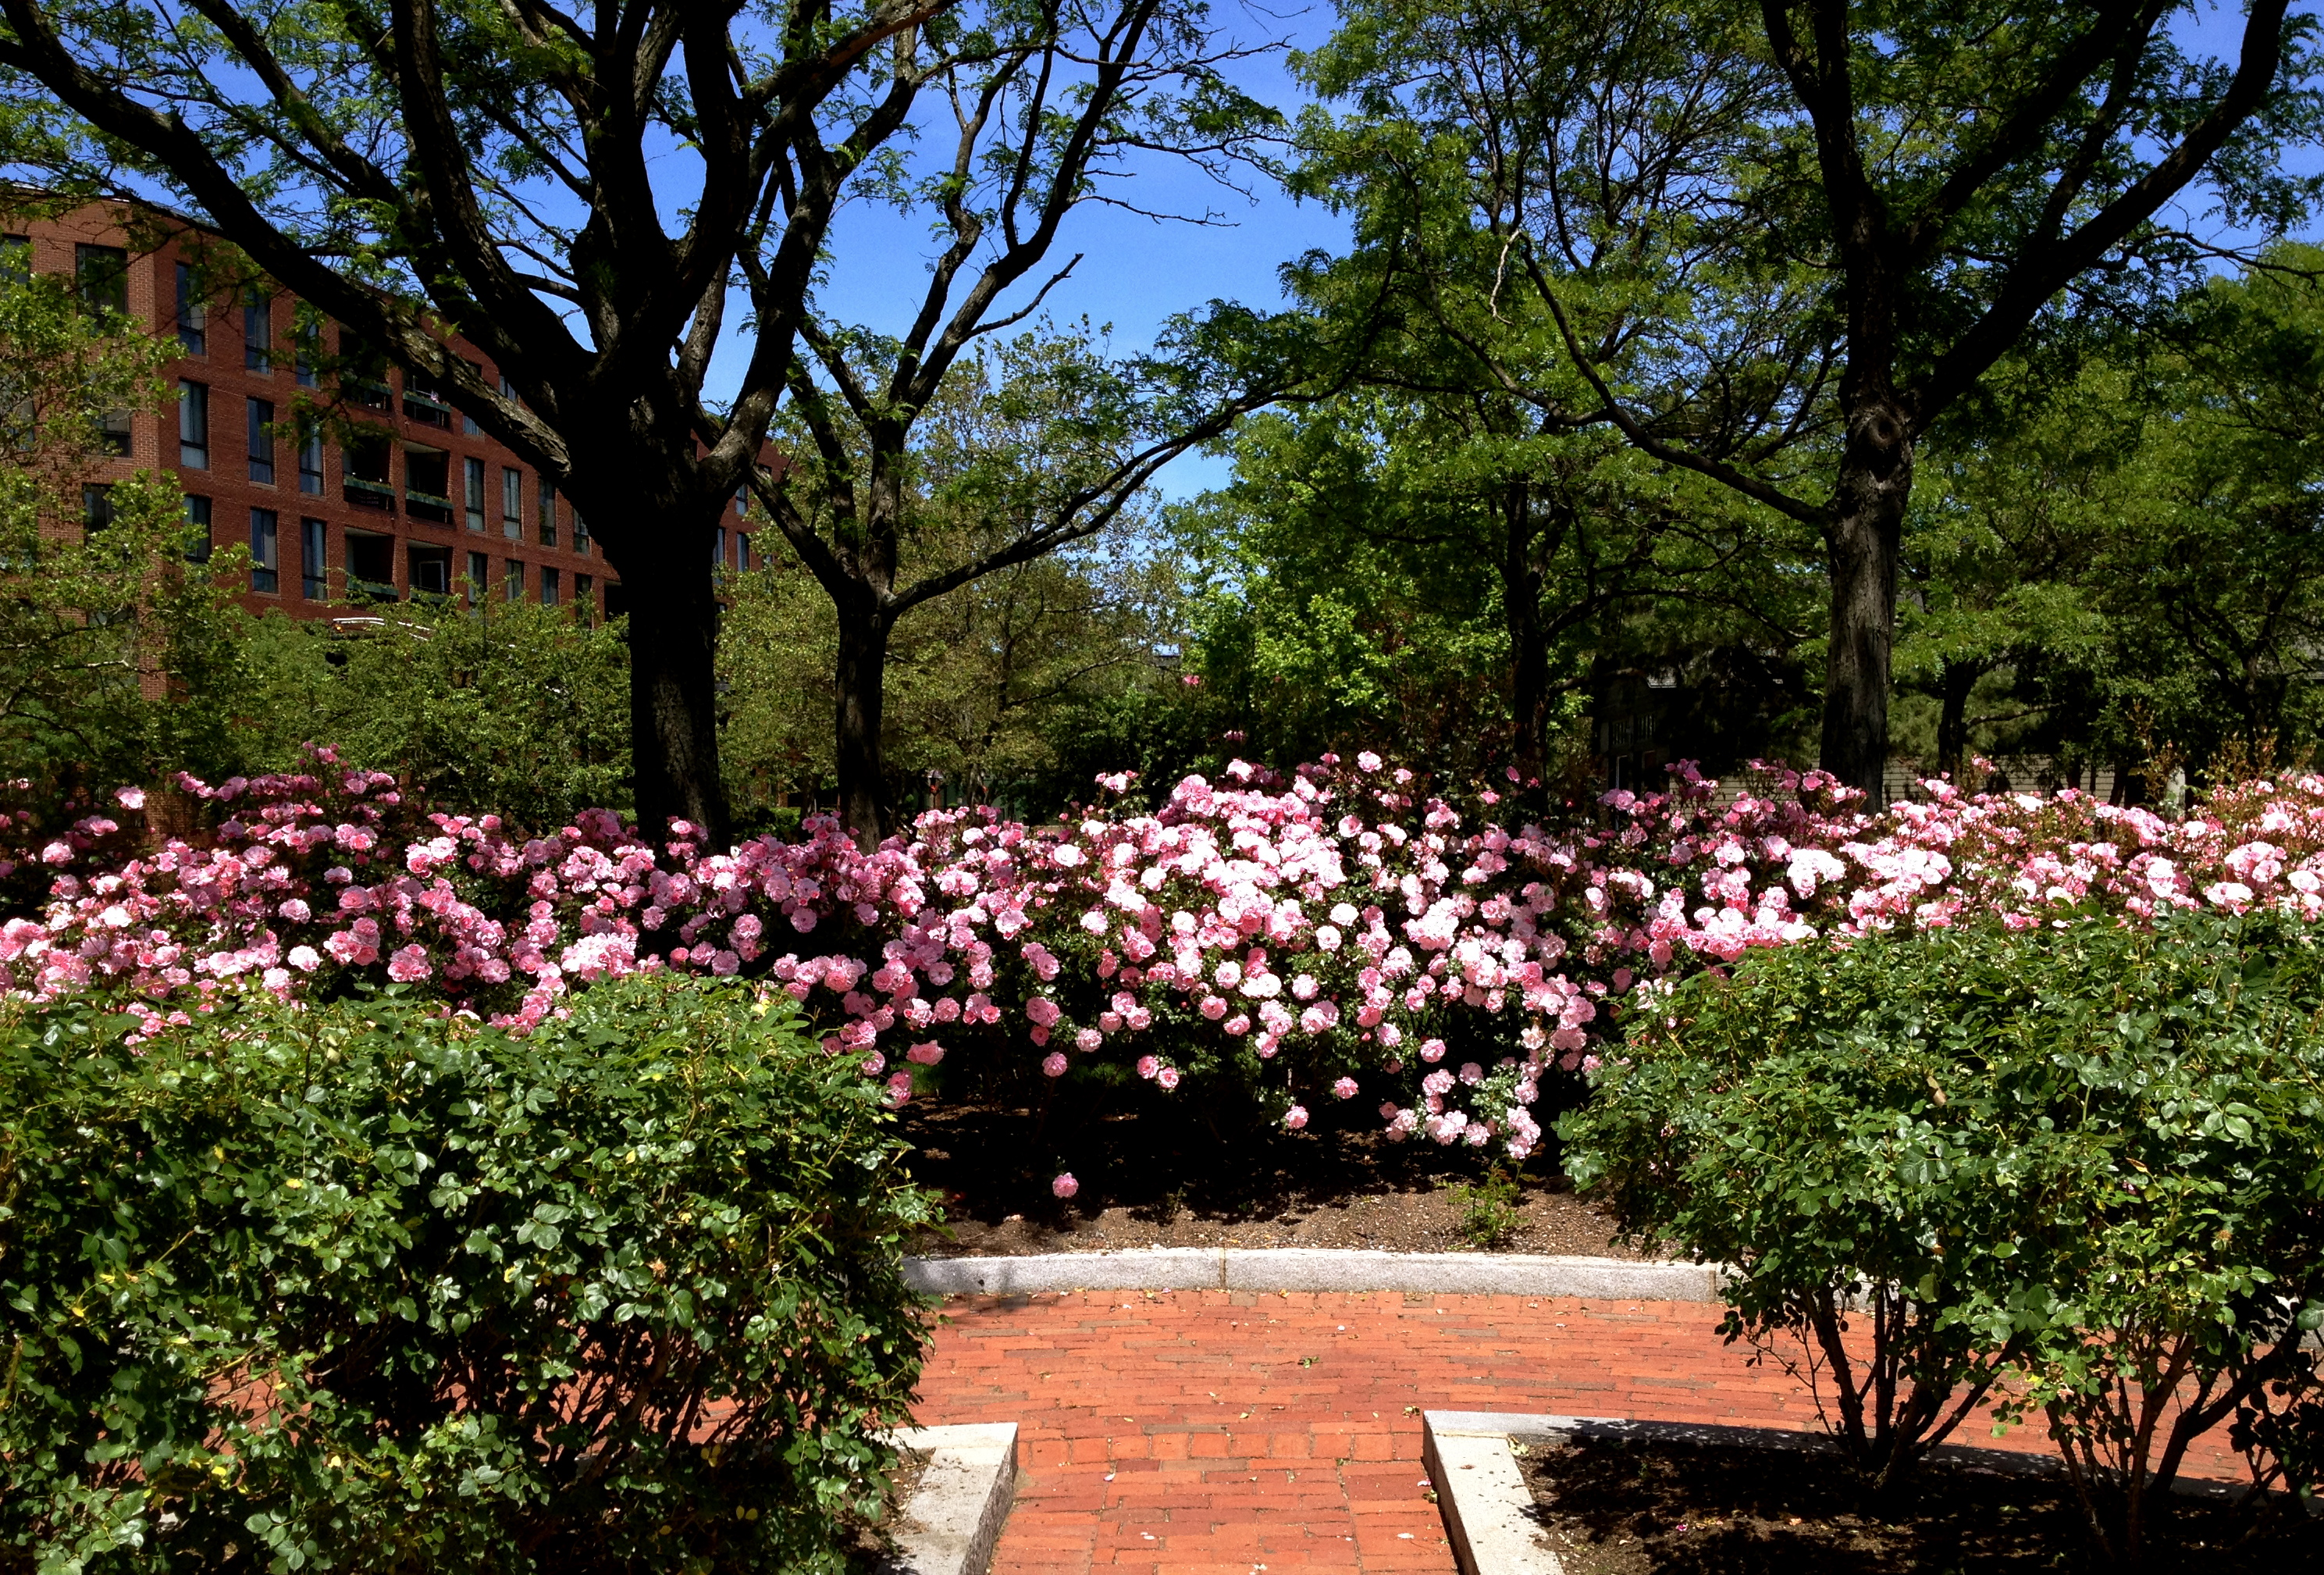 boston does not have many gardens in the downtown which adds to the appeal of this intimate space simple and elegant the rose garden provides an - Pictures Of Rose Gardens